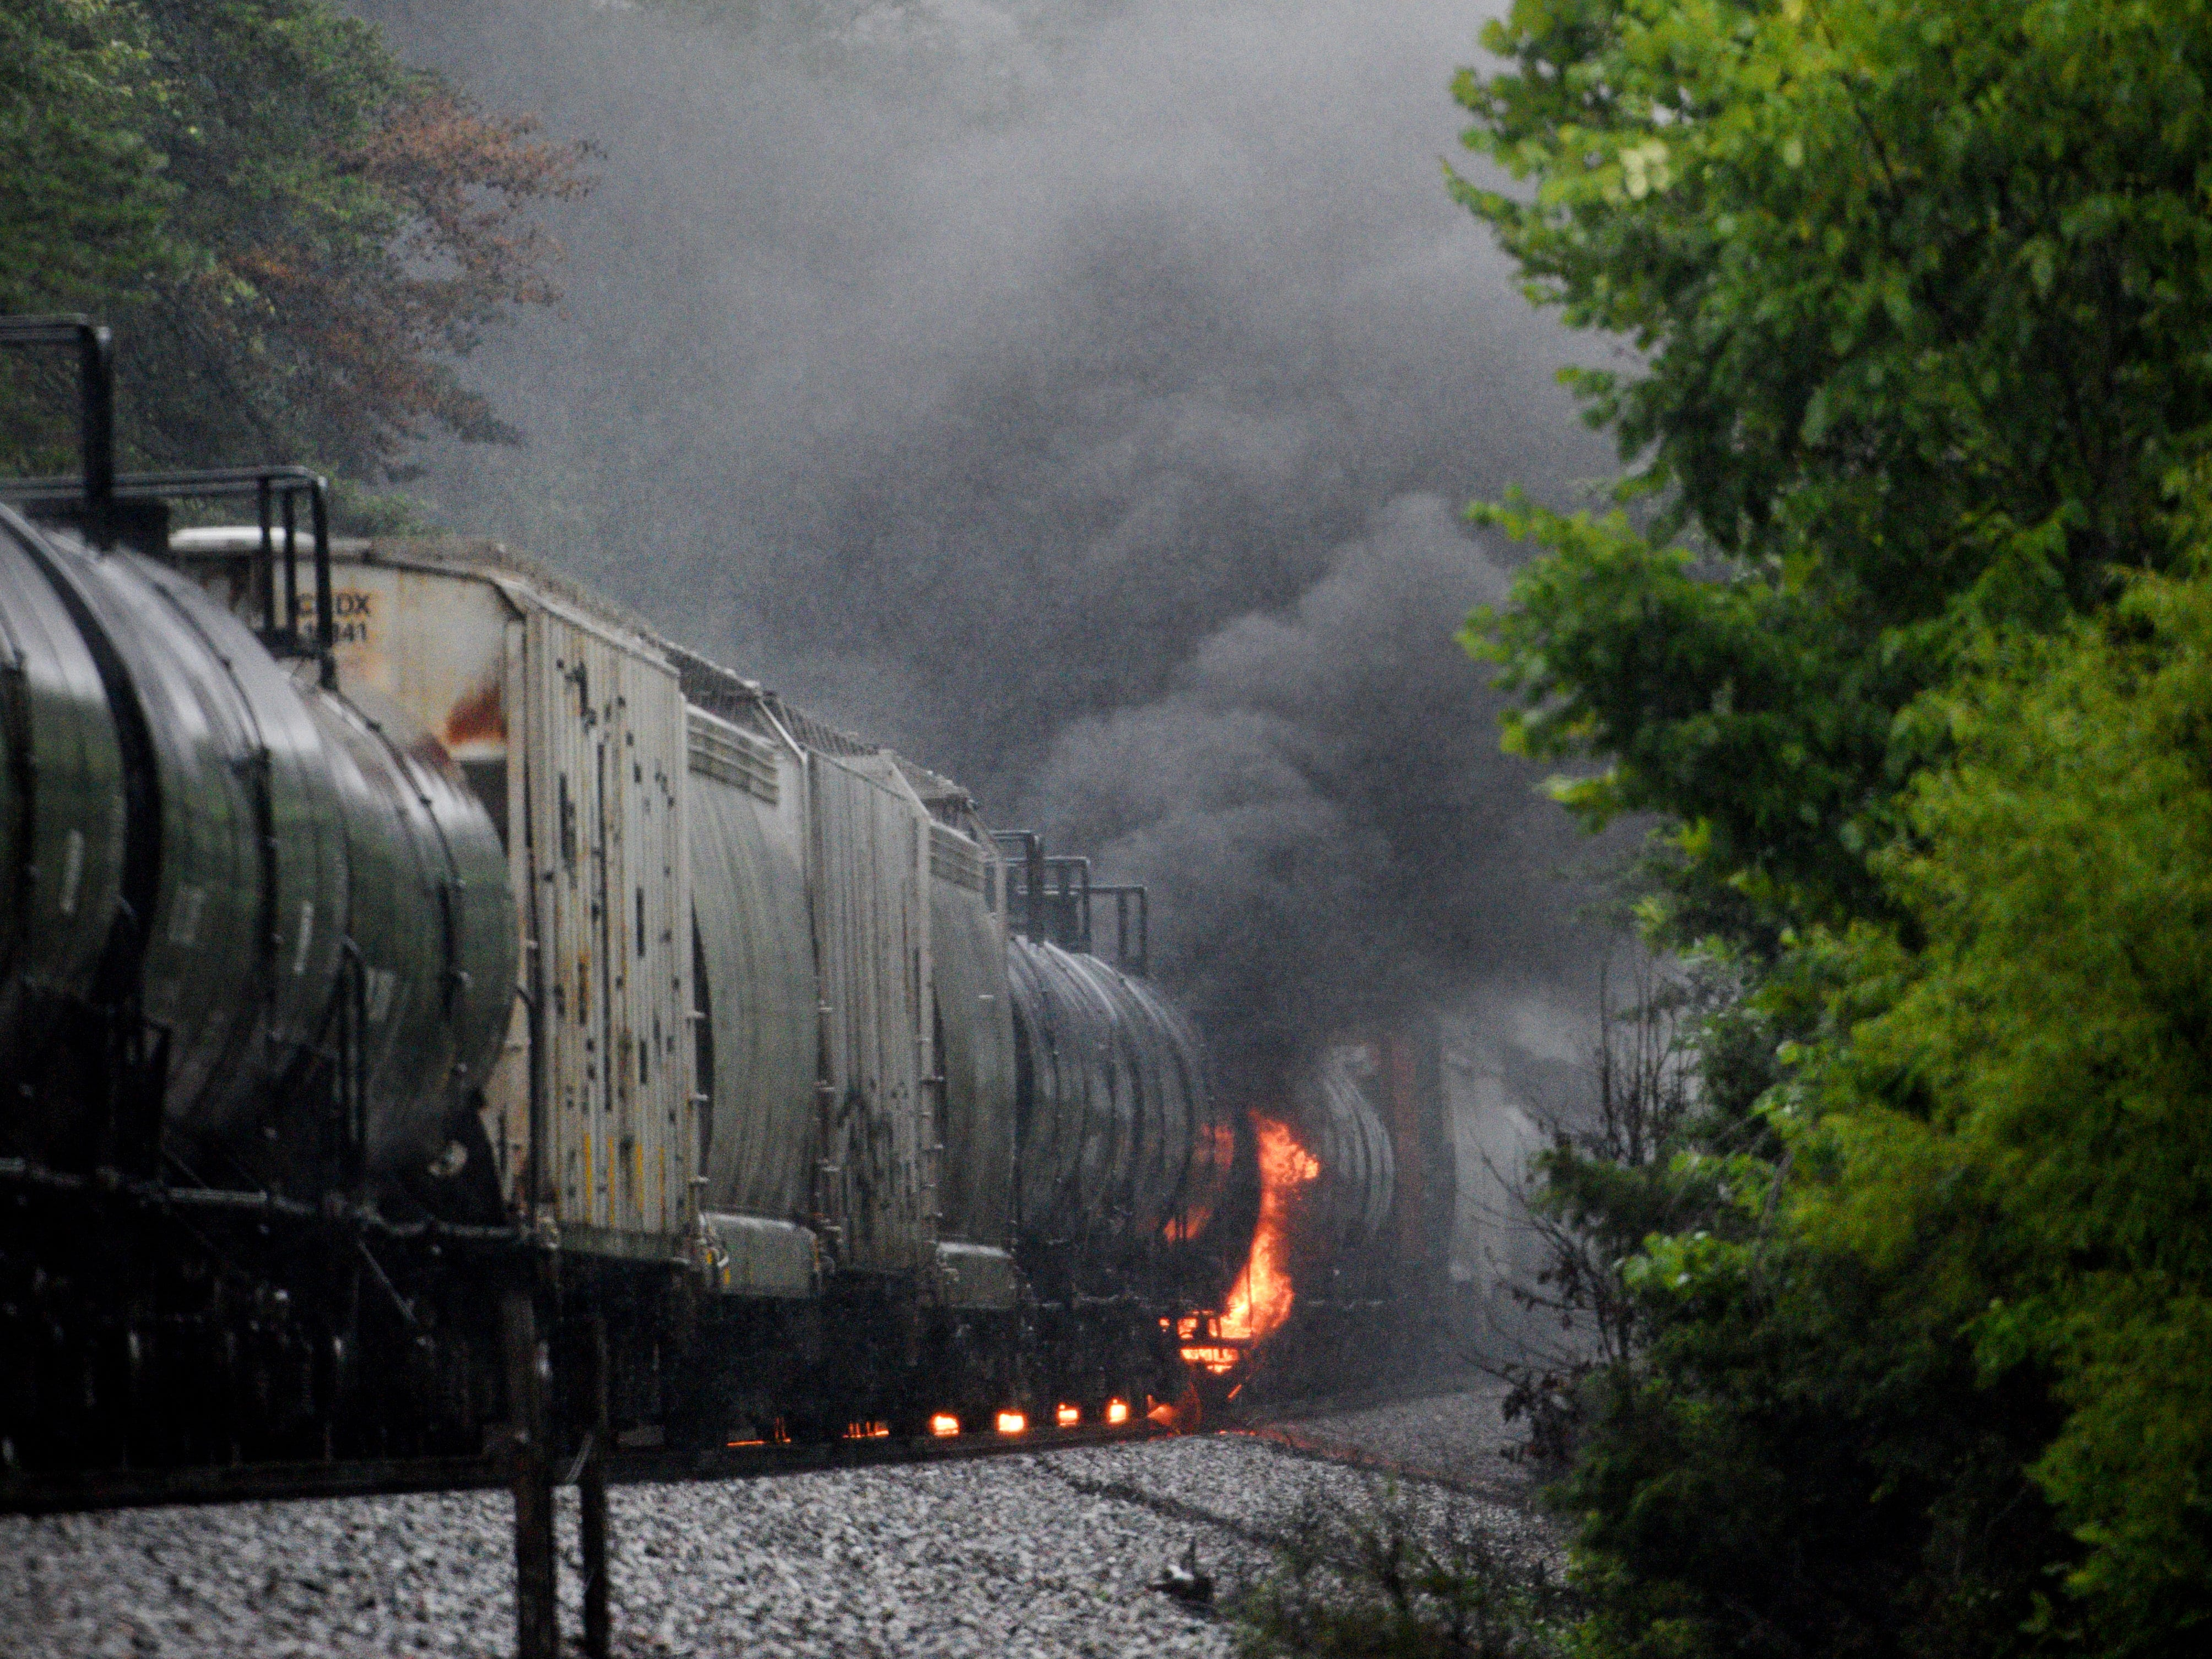 """Smoke rises from a CSX train following the derailment of a tank car carrying a """"highly flammable and toxic"""" gas Thursday, July 2, 2015, in Maryville, Tenn. The single tank car loaded with acrylonitrile, a hazardous material used in a variety of industrial processes including the manufacture of plastics, forced an evacuation of residences and businesses in a two-mile radius."""